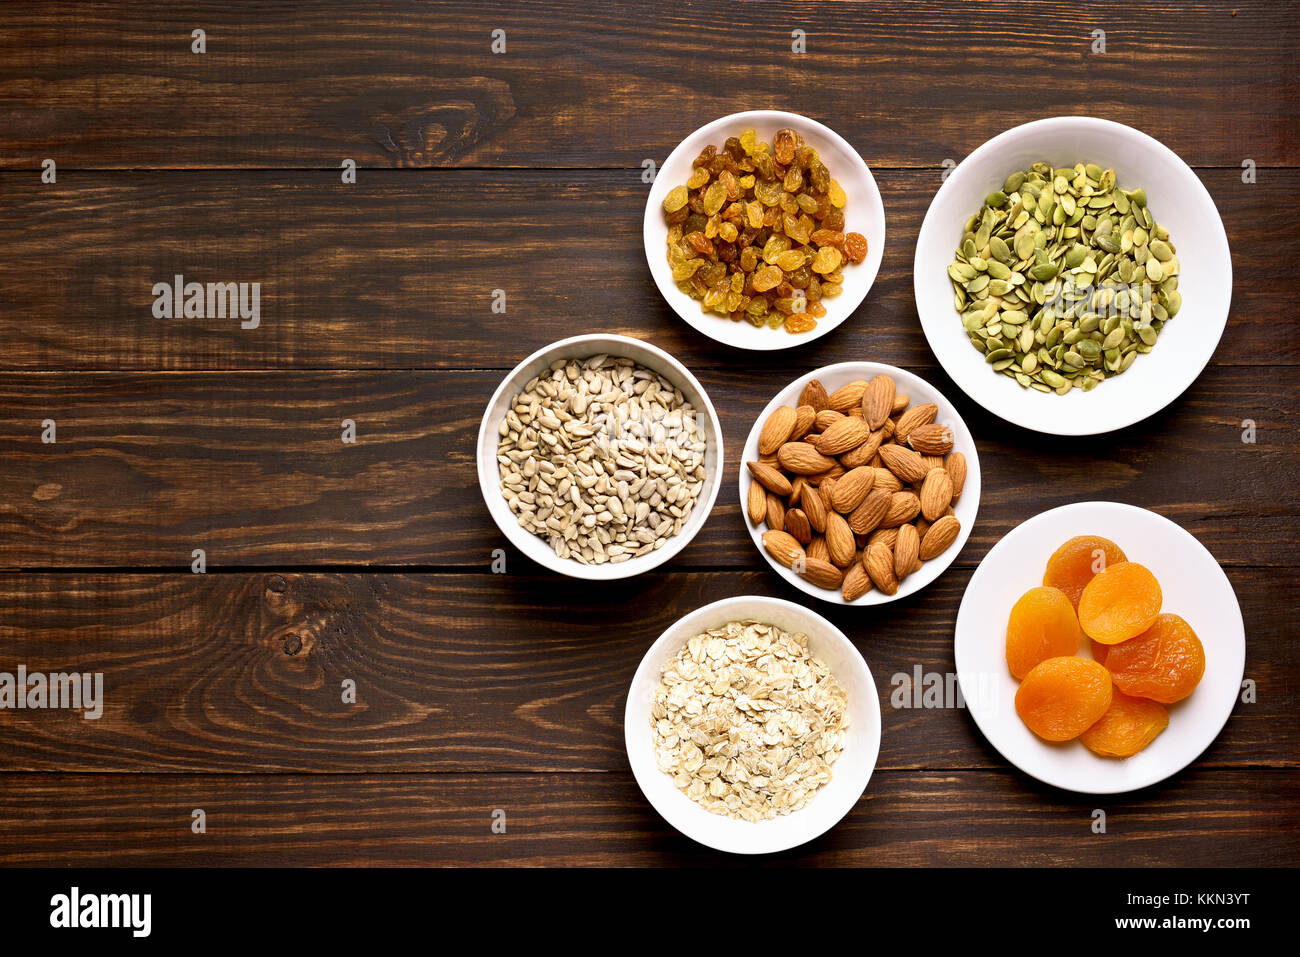 Bowl with ingredients for cooking granola on wooden background with copy space. Top view, flat lay - Stock Image